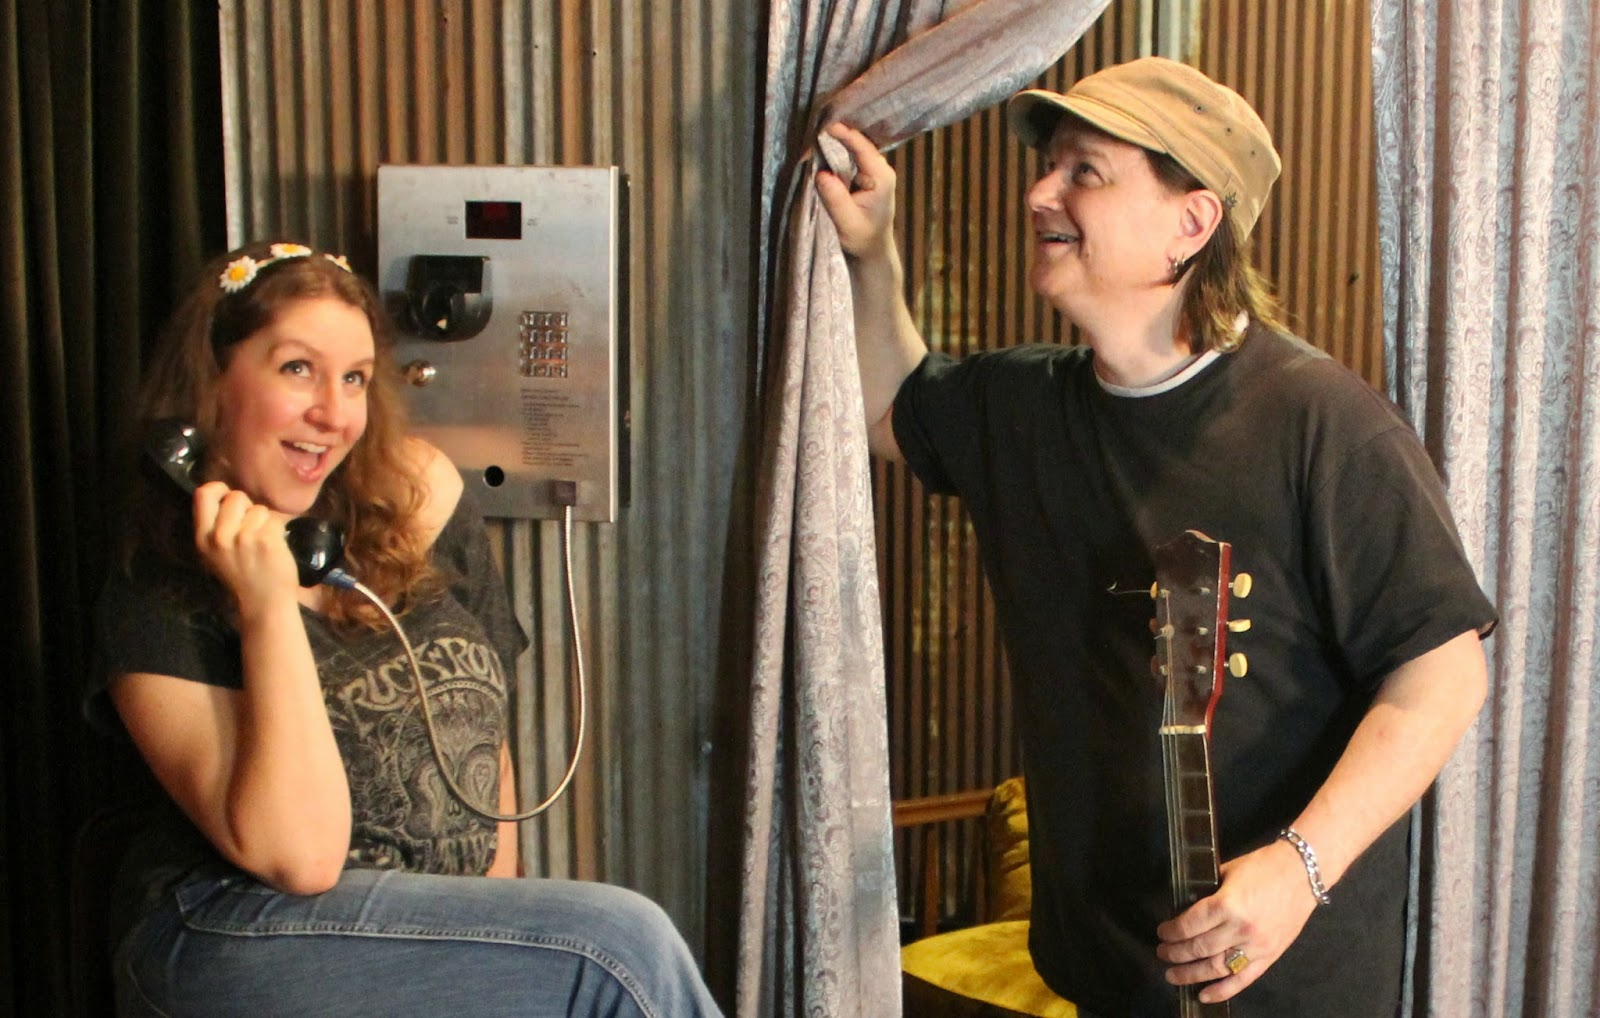 What's happening backstage at the Commune and who are these people?